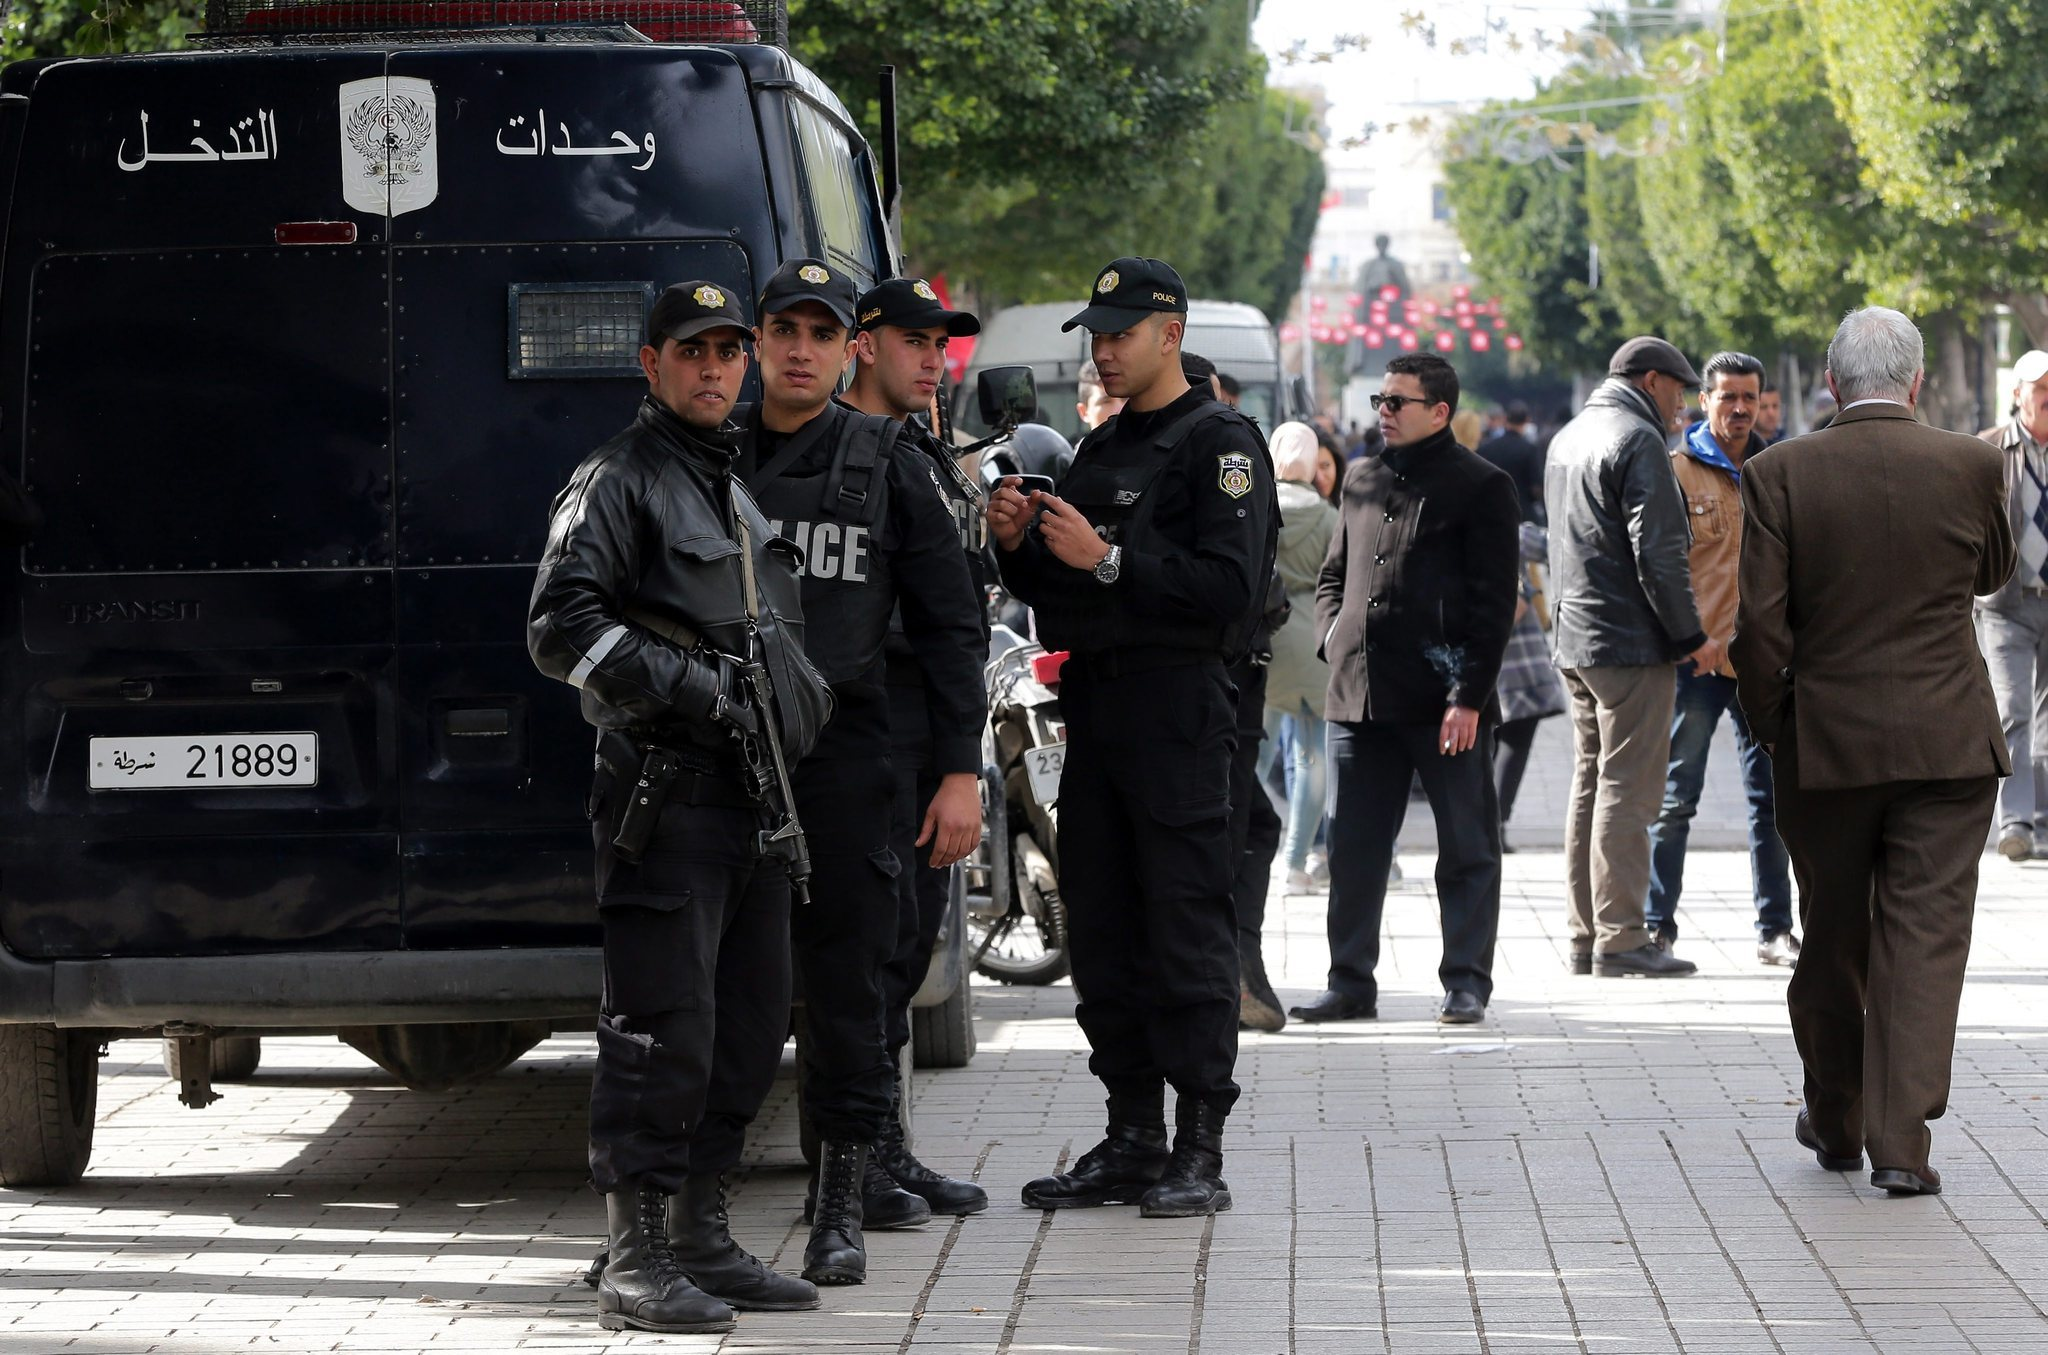 Tunisia unrest leads to nationwide curfew